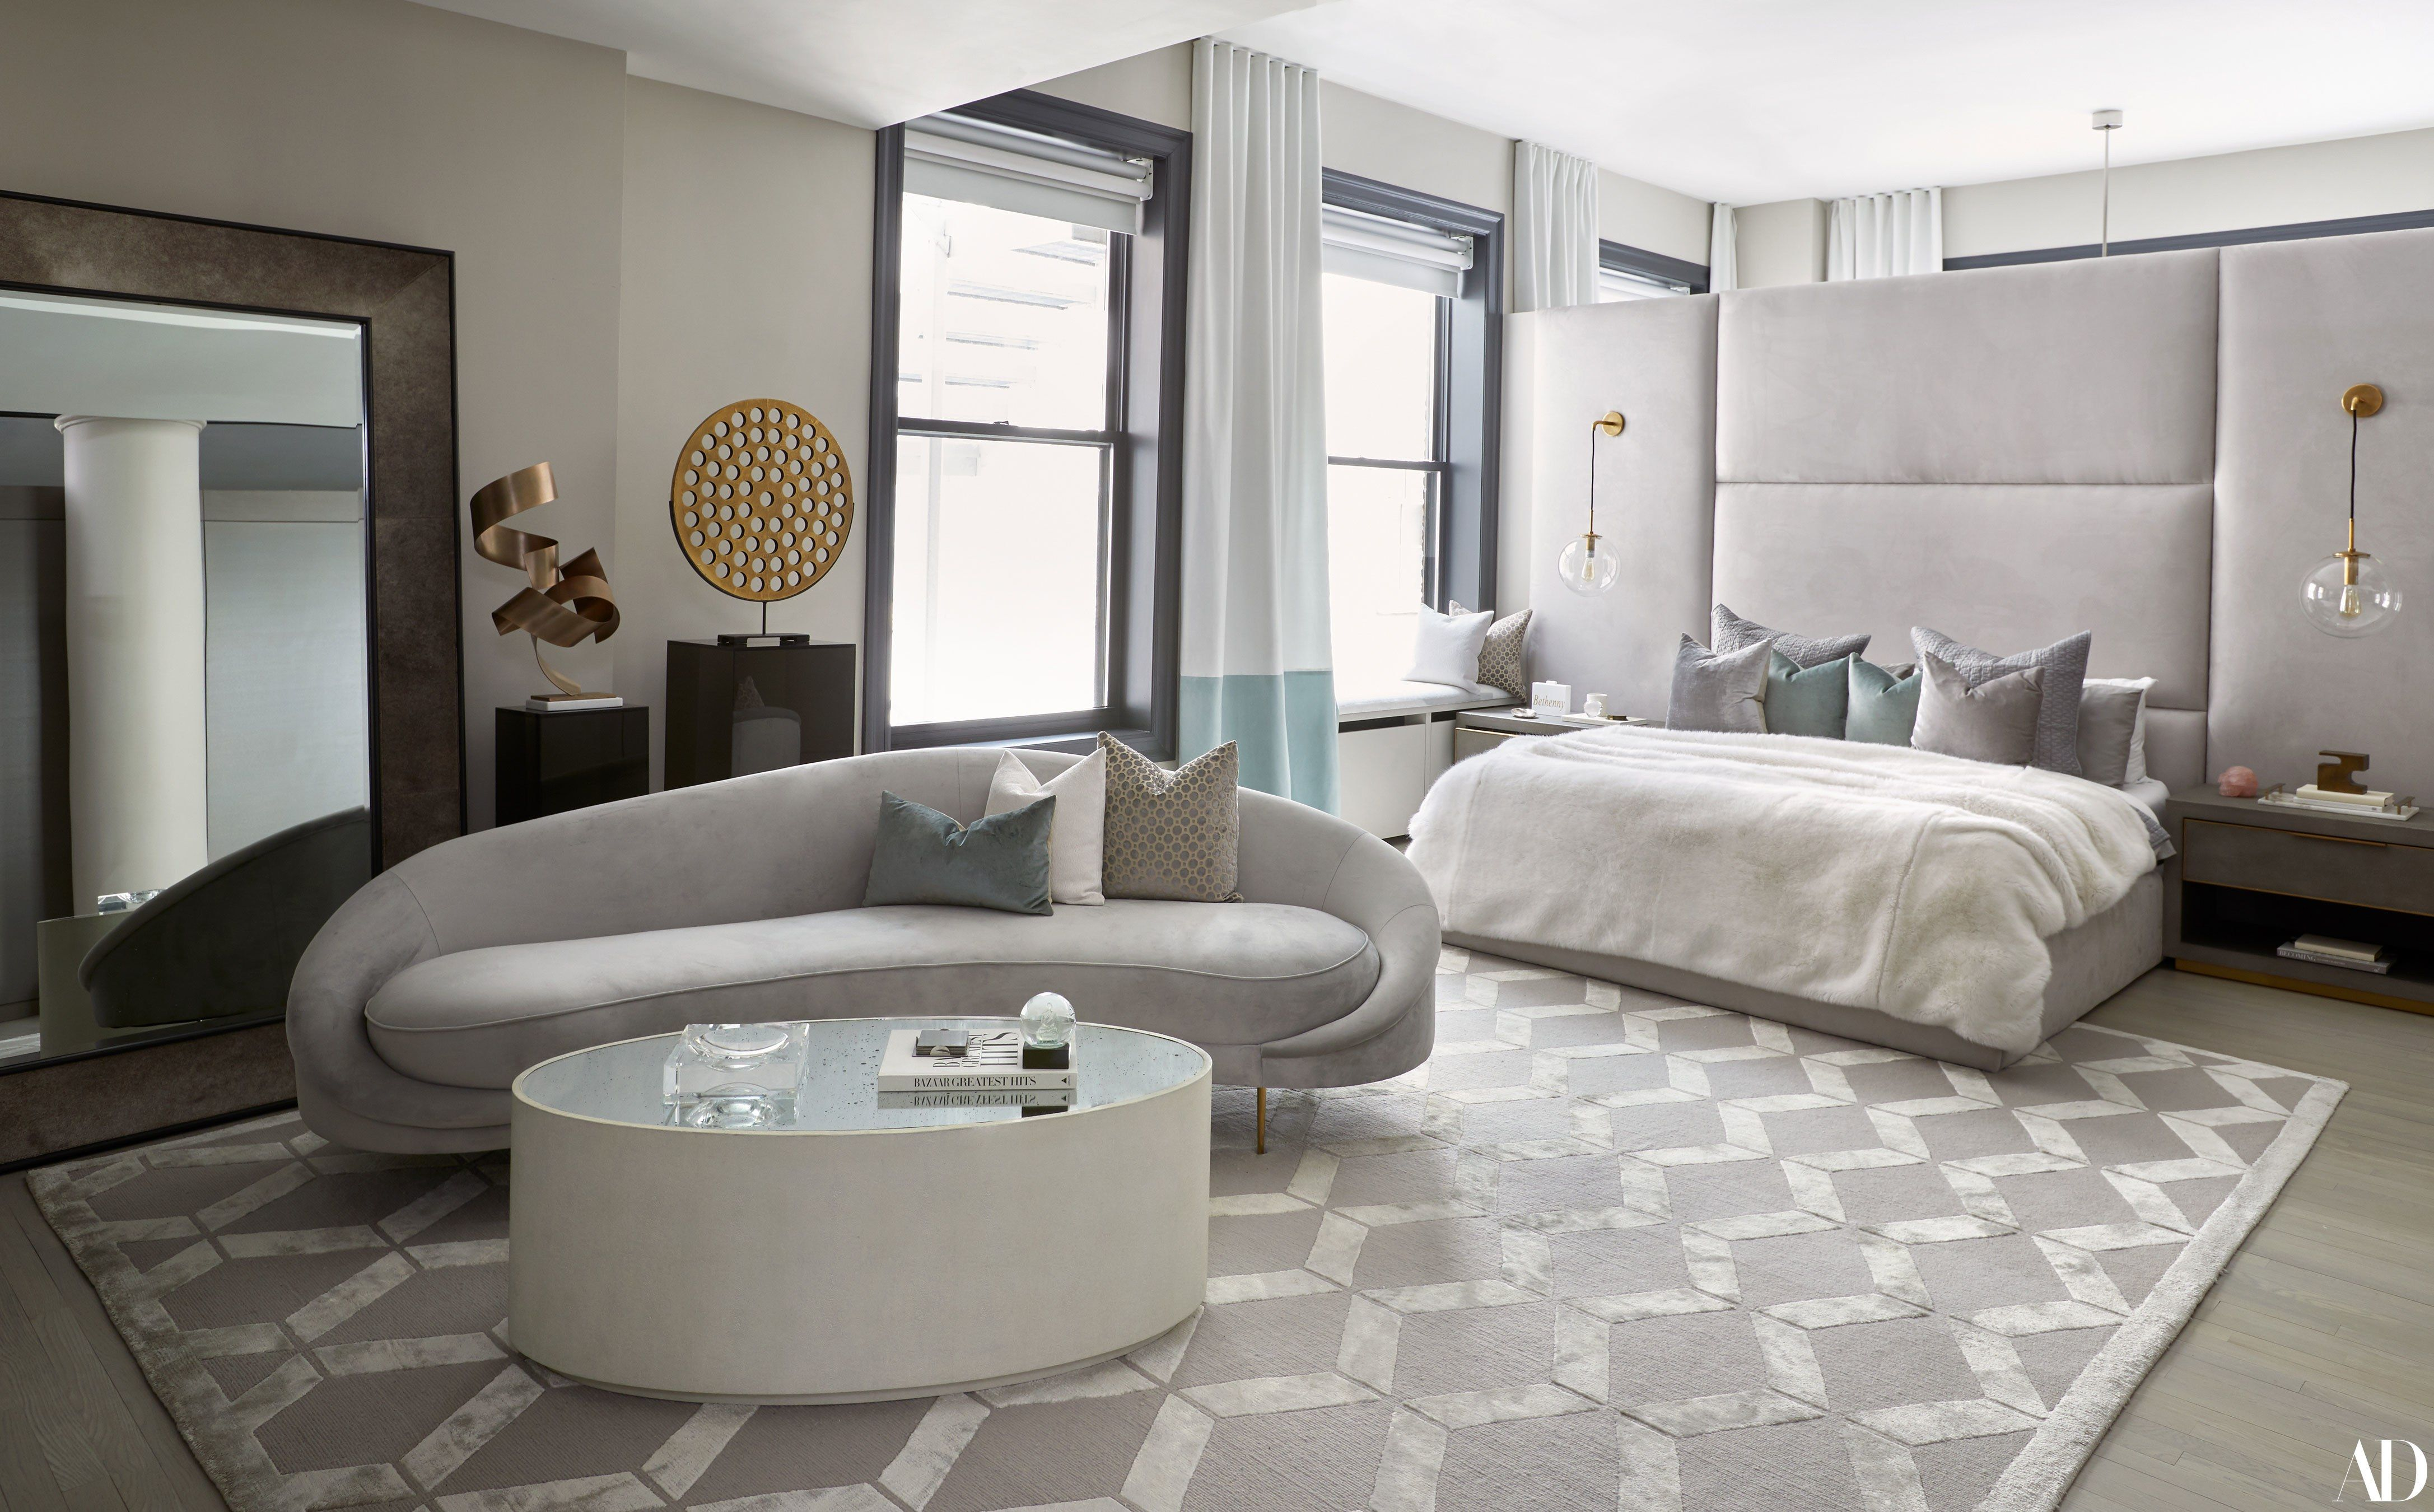 Take a Look Inside Bethenny Frankel s Sleek and Chic Renovated SoHo